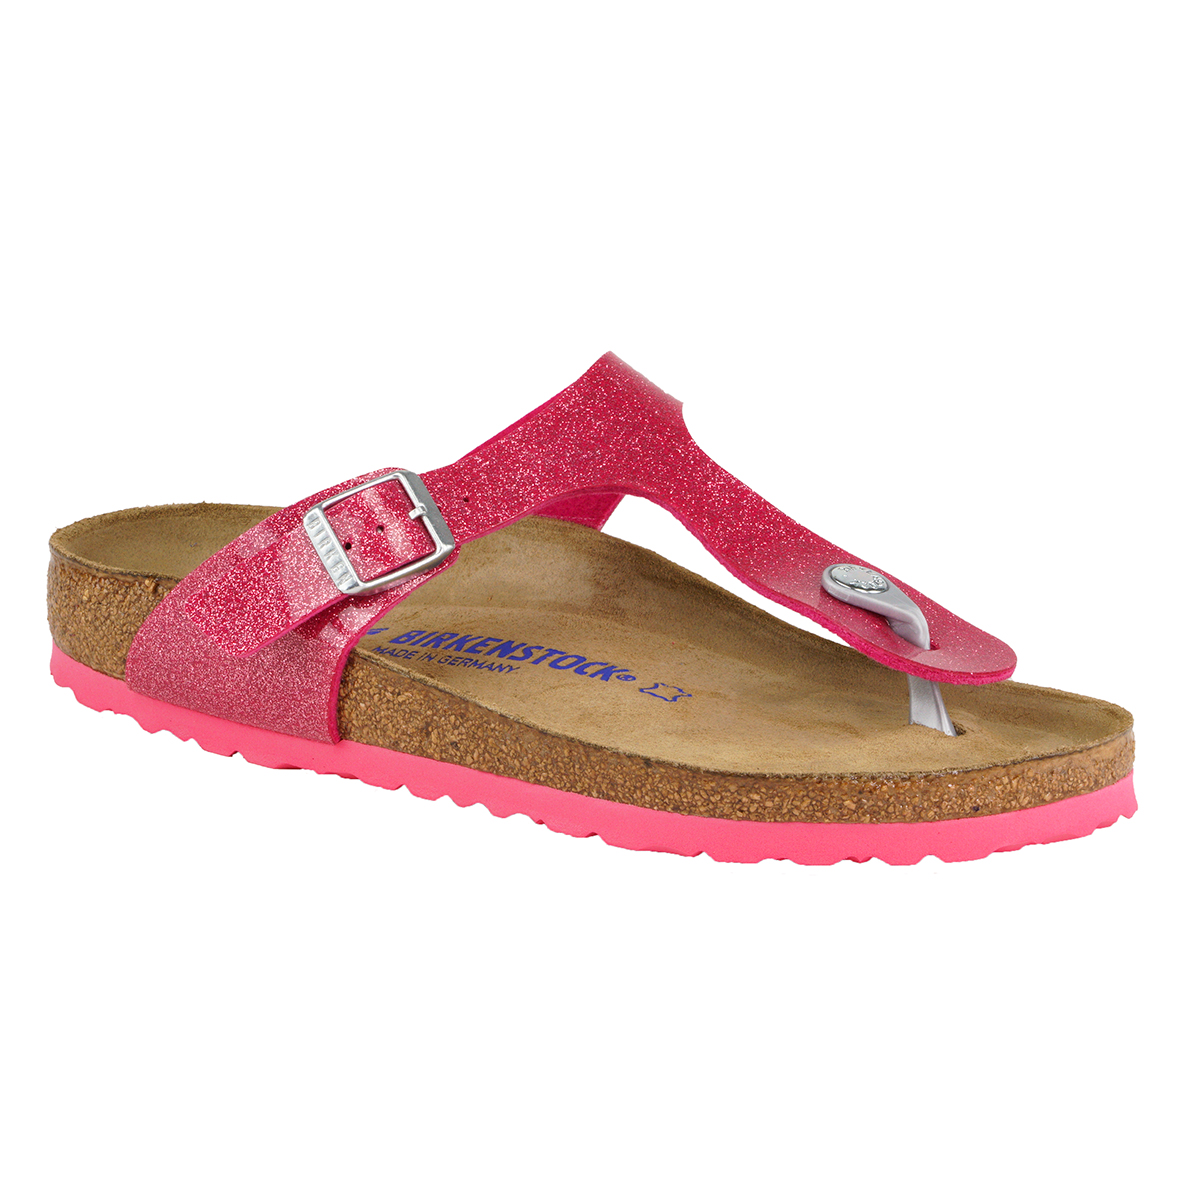 10255d2629e Birkenstock Gizeh Soft Footbed Birko-Flor Sandals Magic Galaxy Rose 40 N